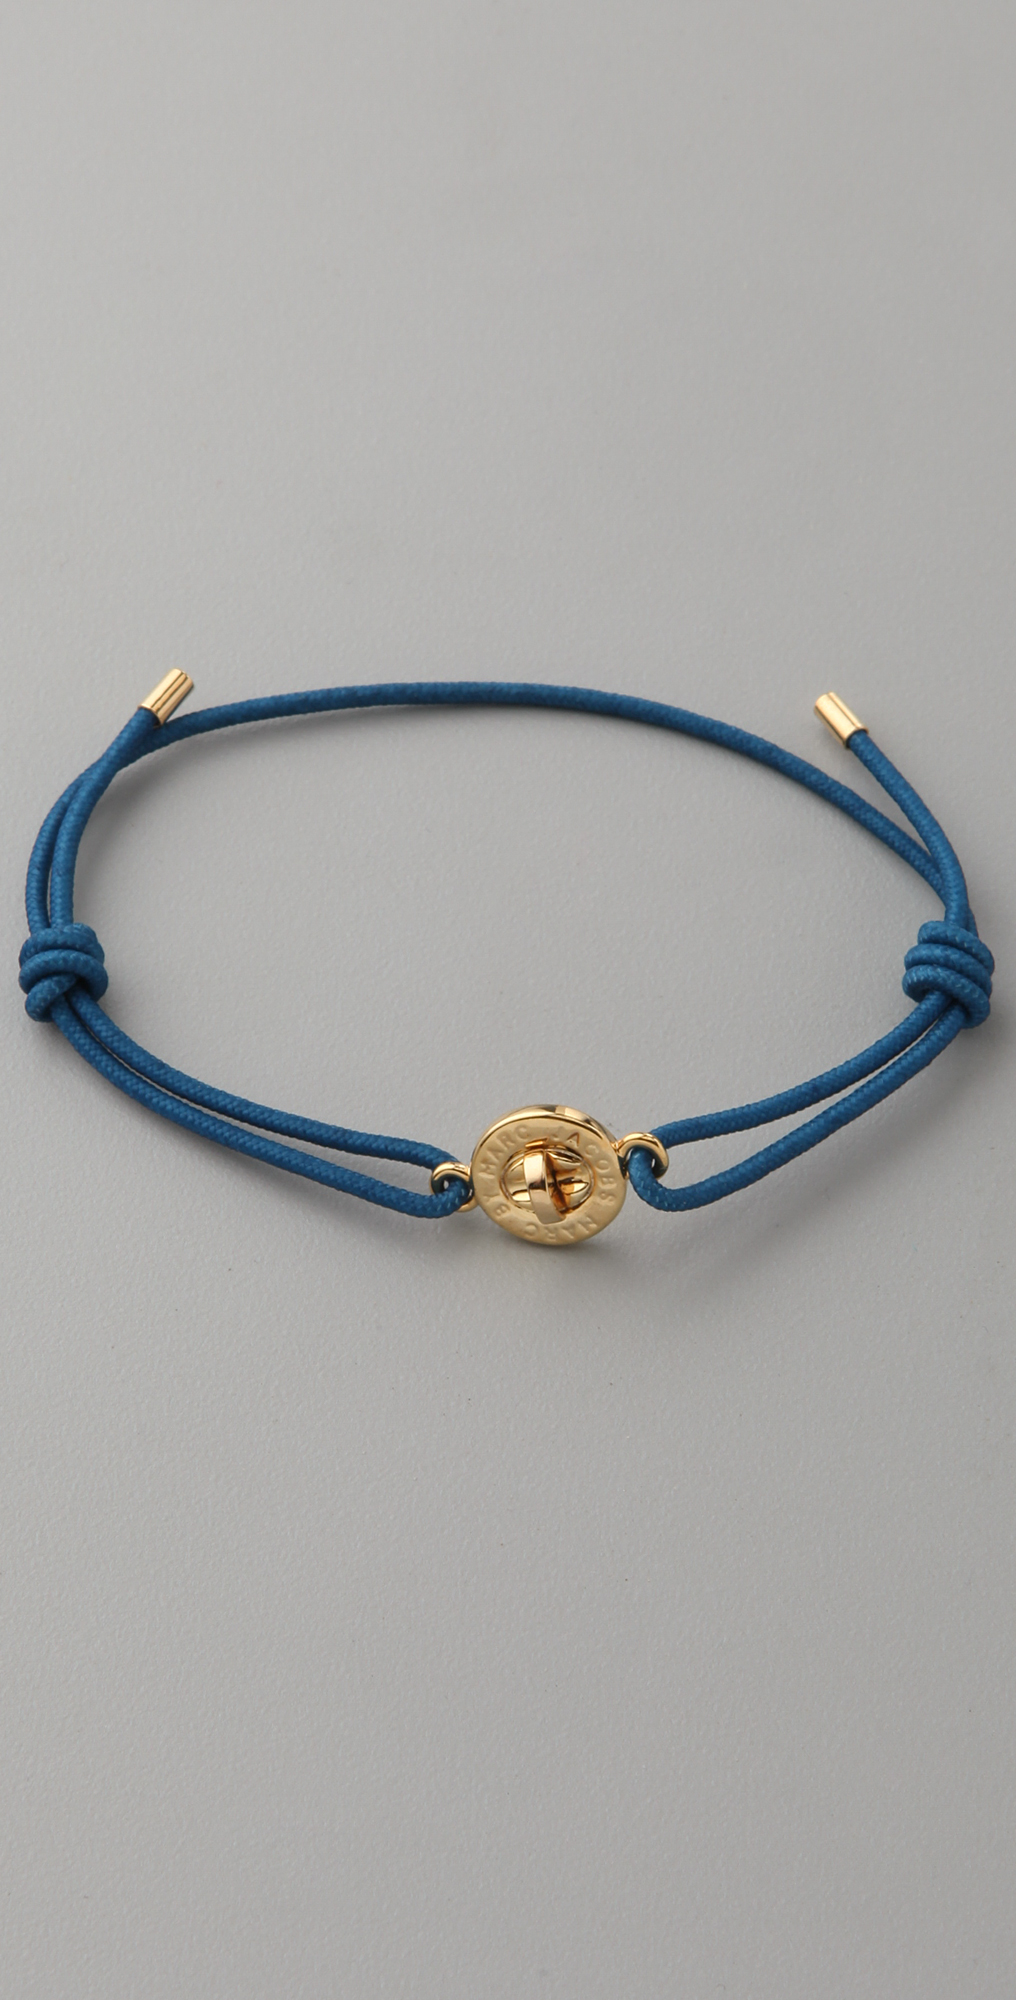 Marc by Marc Jacobs Remarcable Turnlock Friendship Bracelet